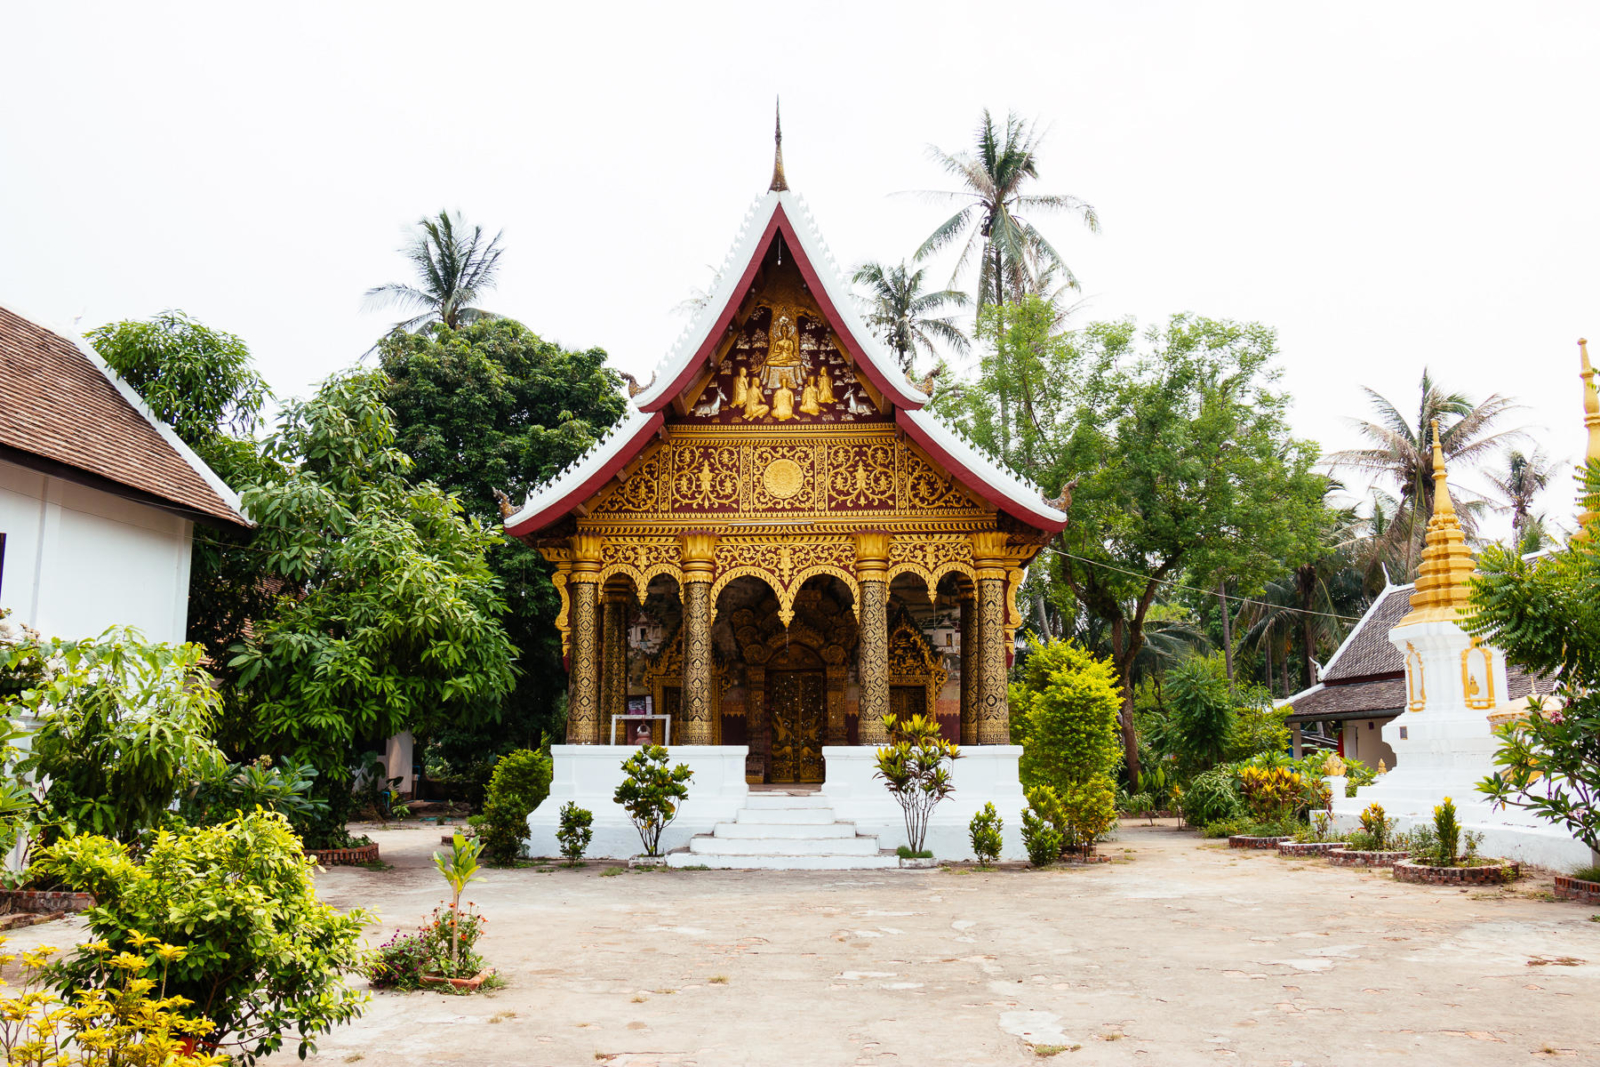 Somewhere in the old town of Luang Prabang